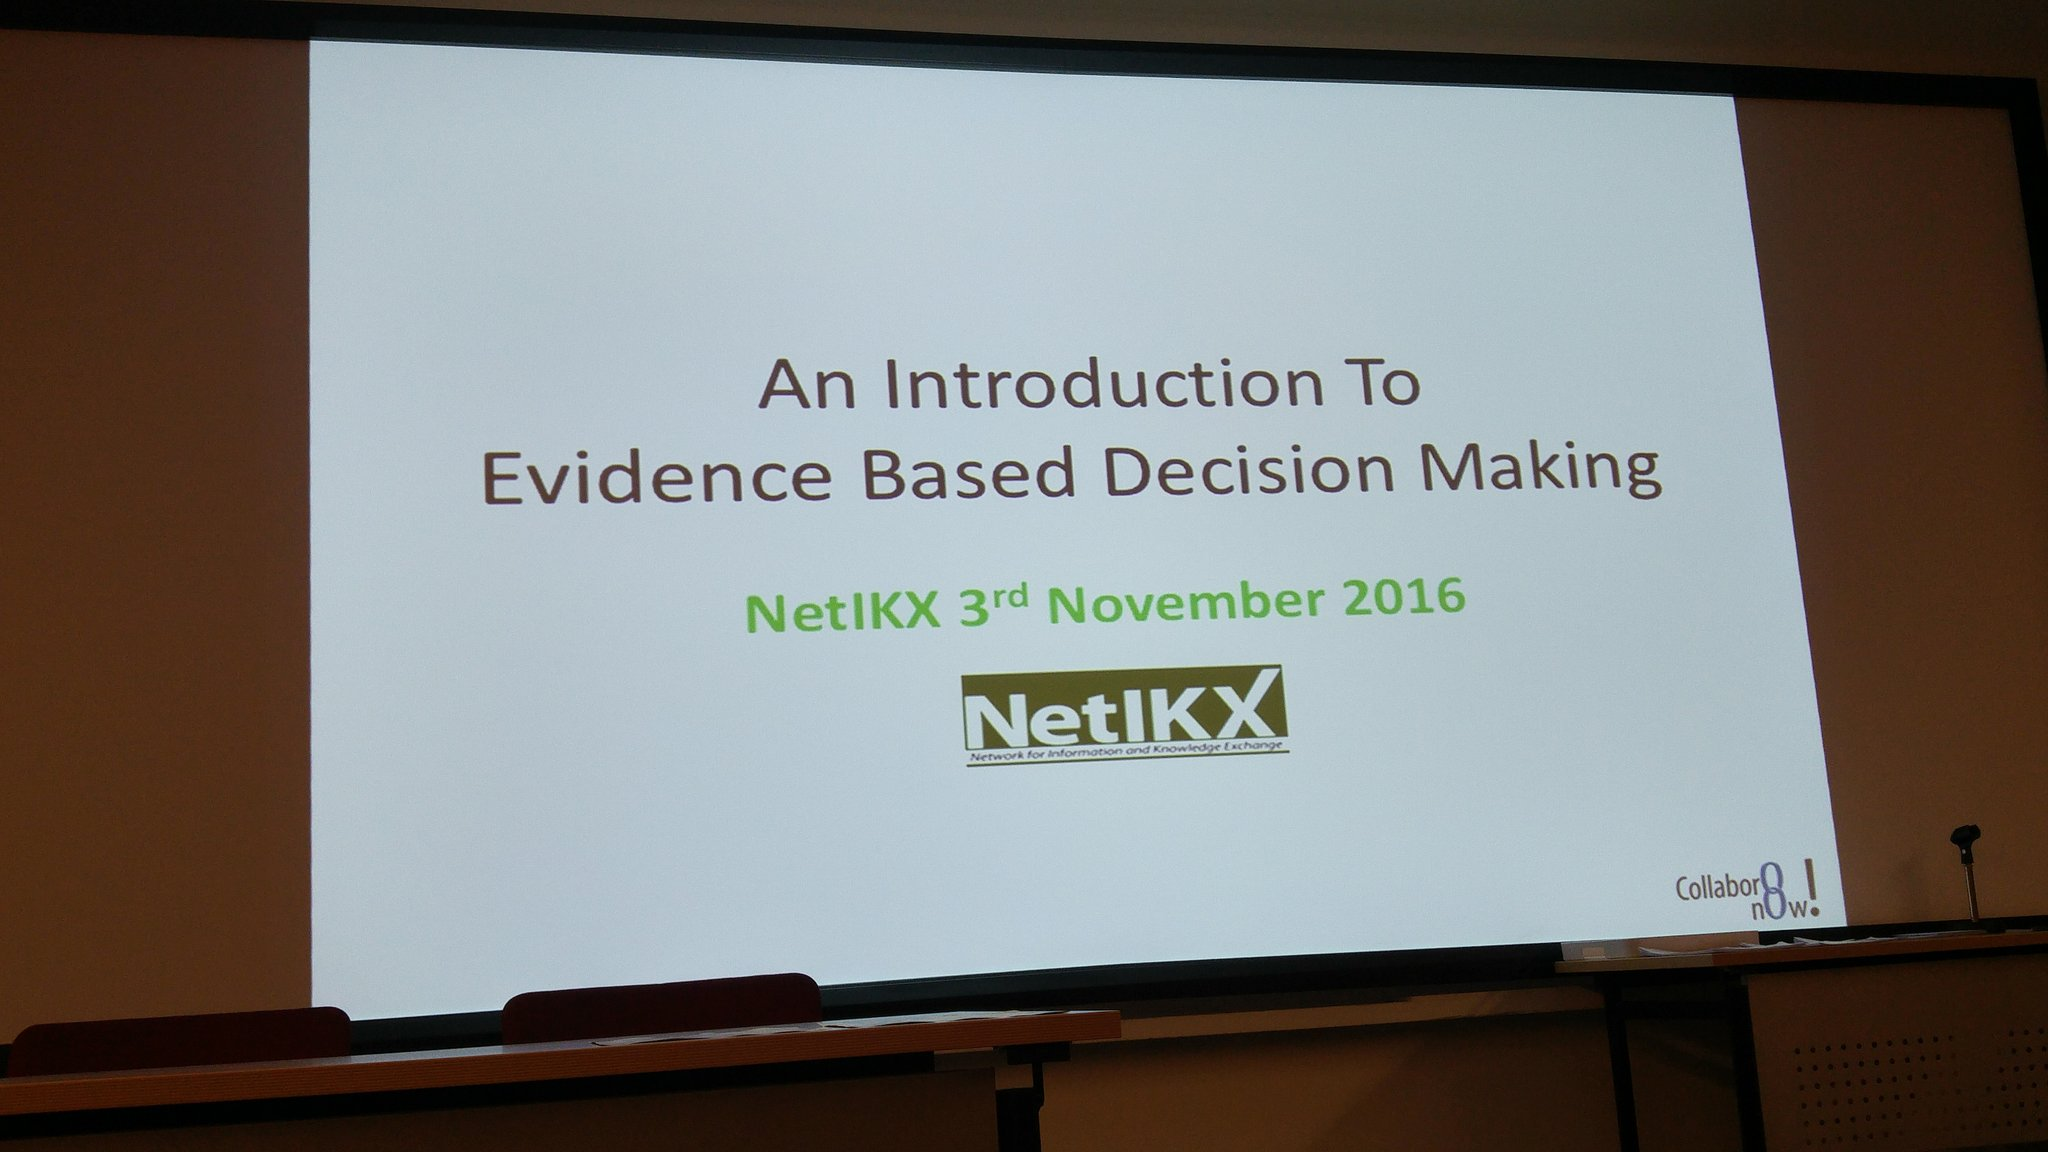 About to kick off #netikx82 with @stephendale https://t.co/4mByU7ezL8